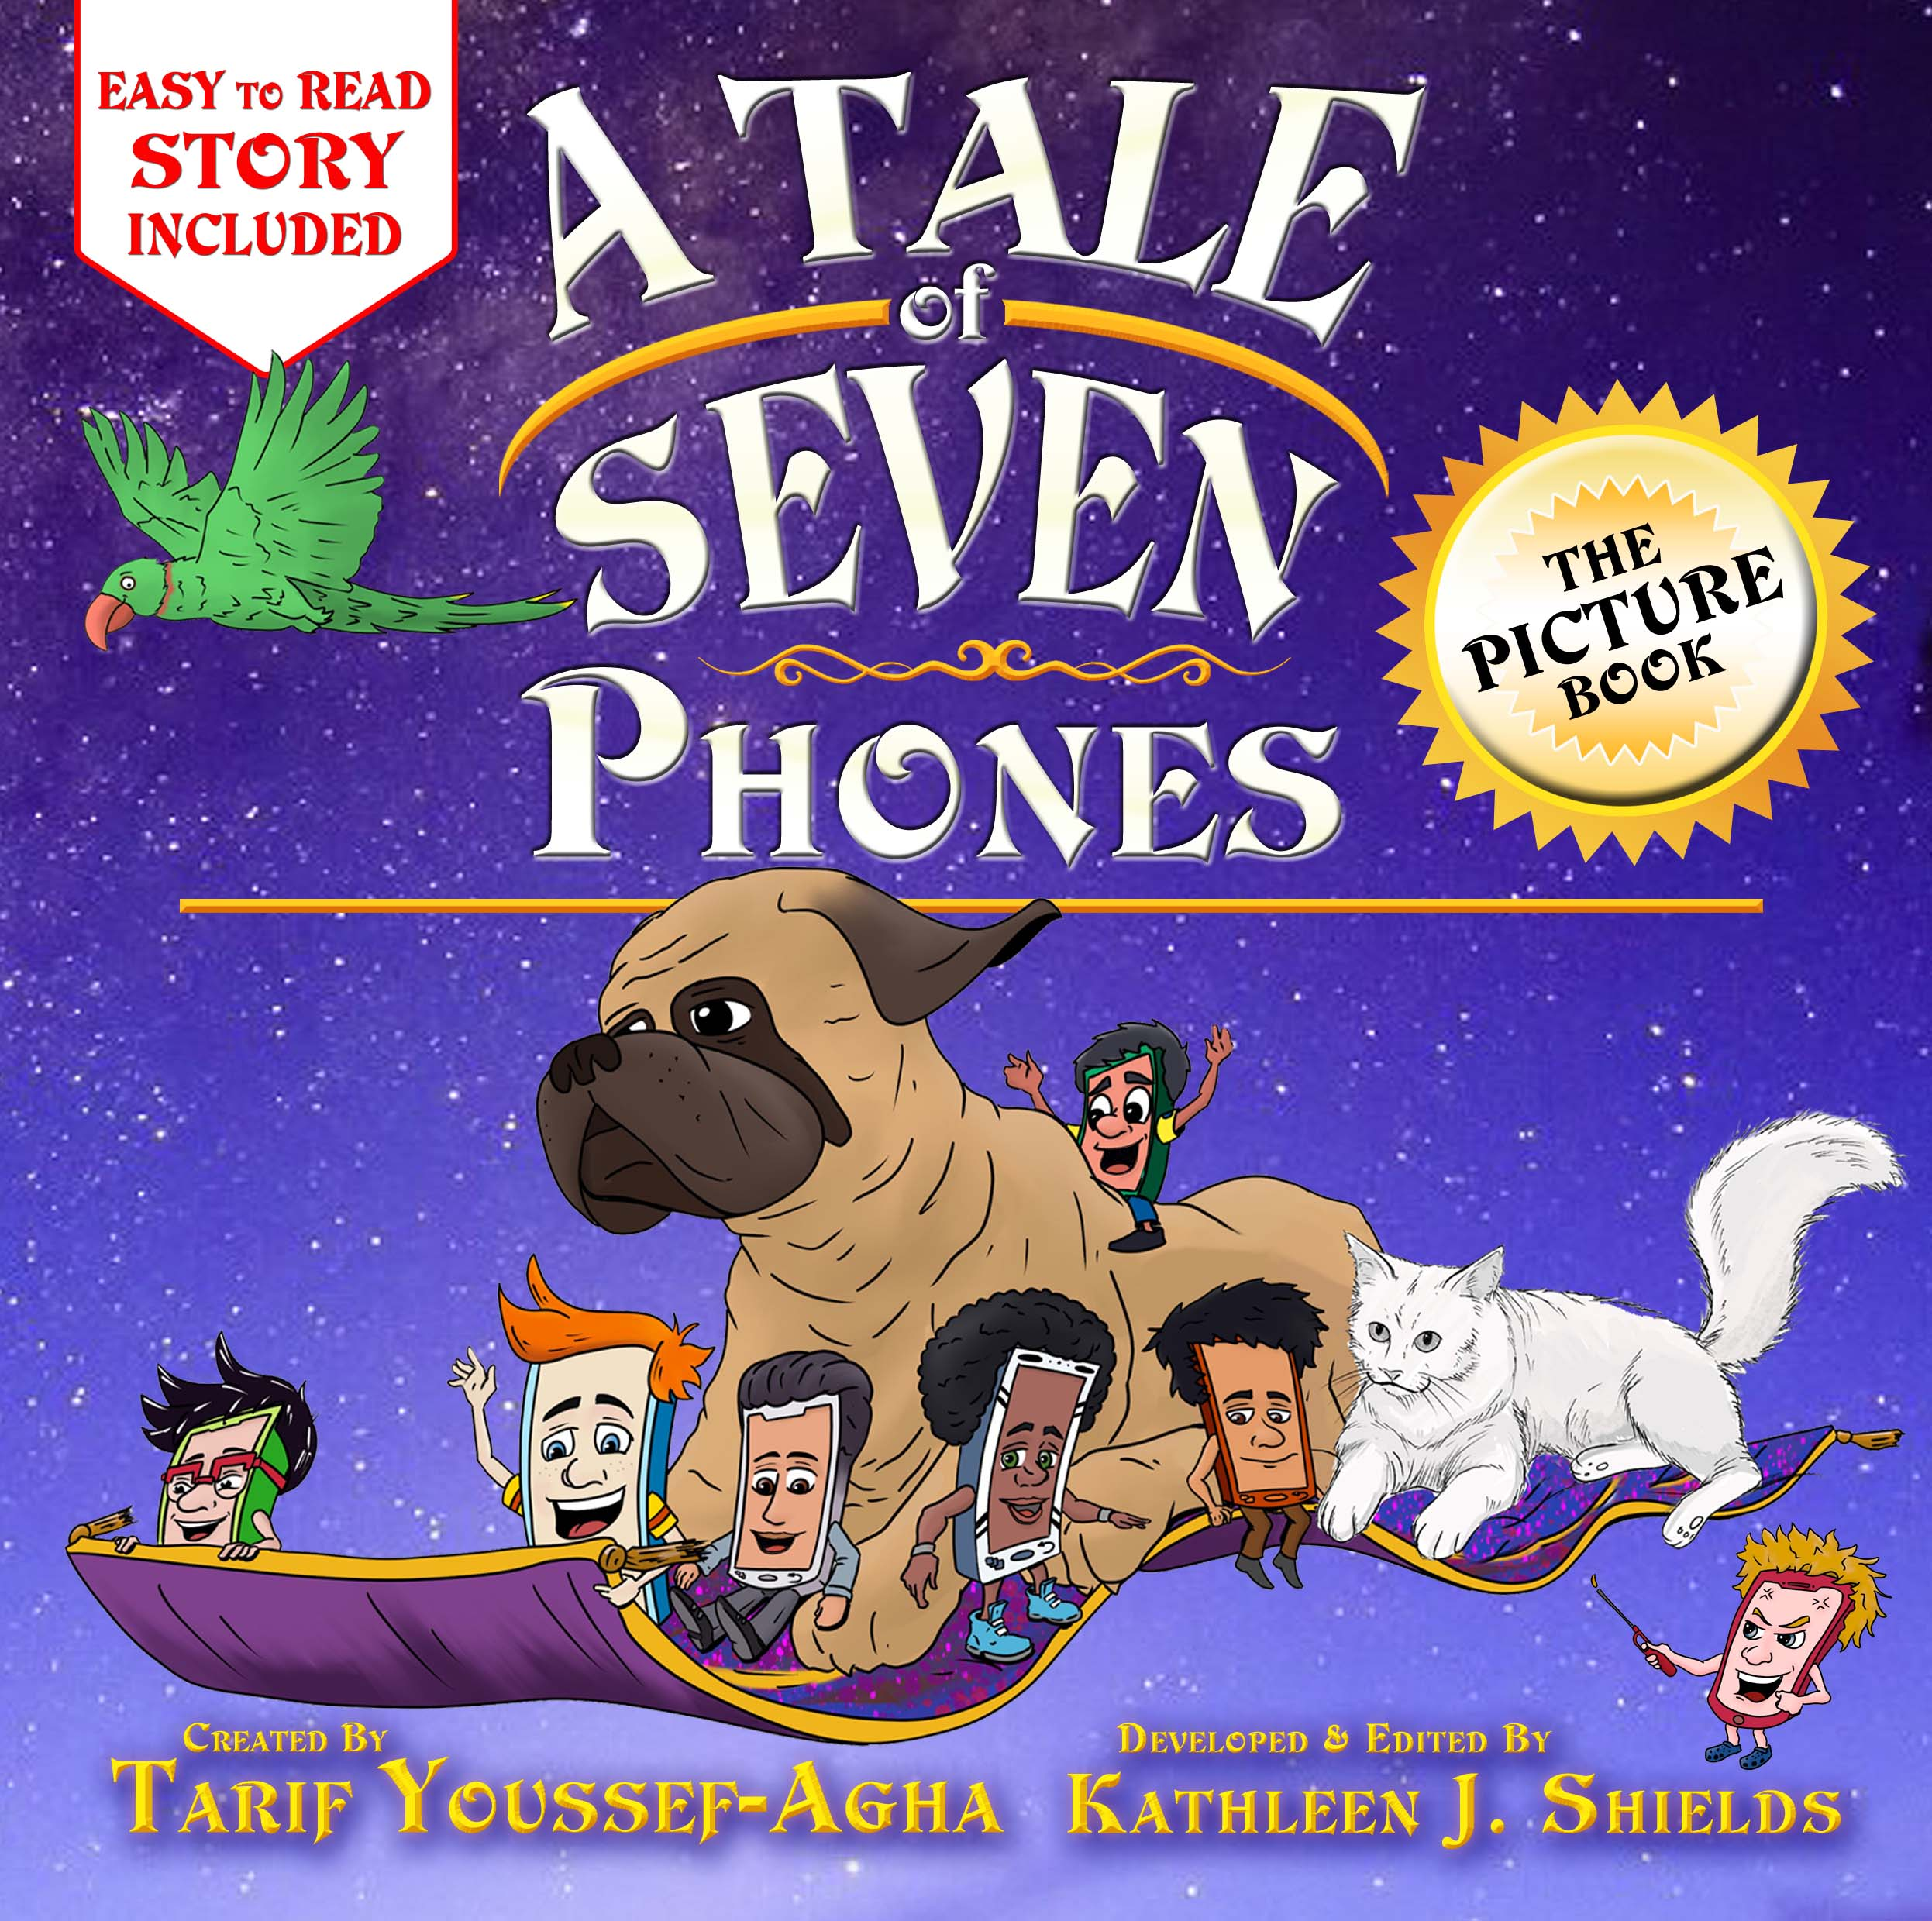 A Tale of Seven Phones, The Picture book by author Tarif Youssef-Agha